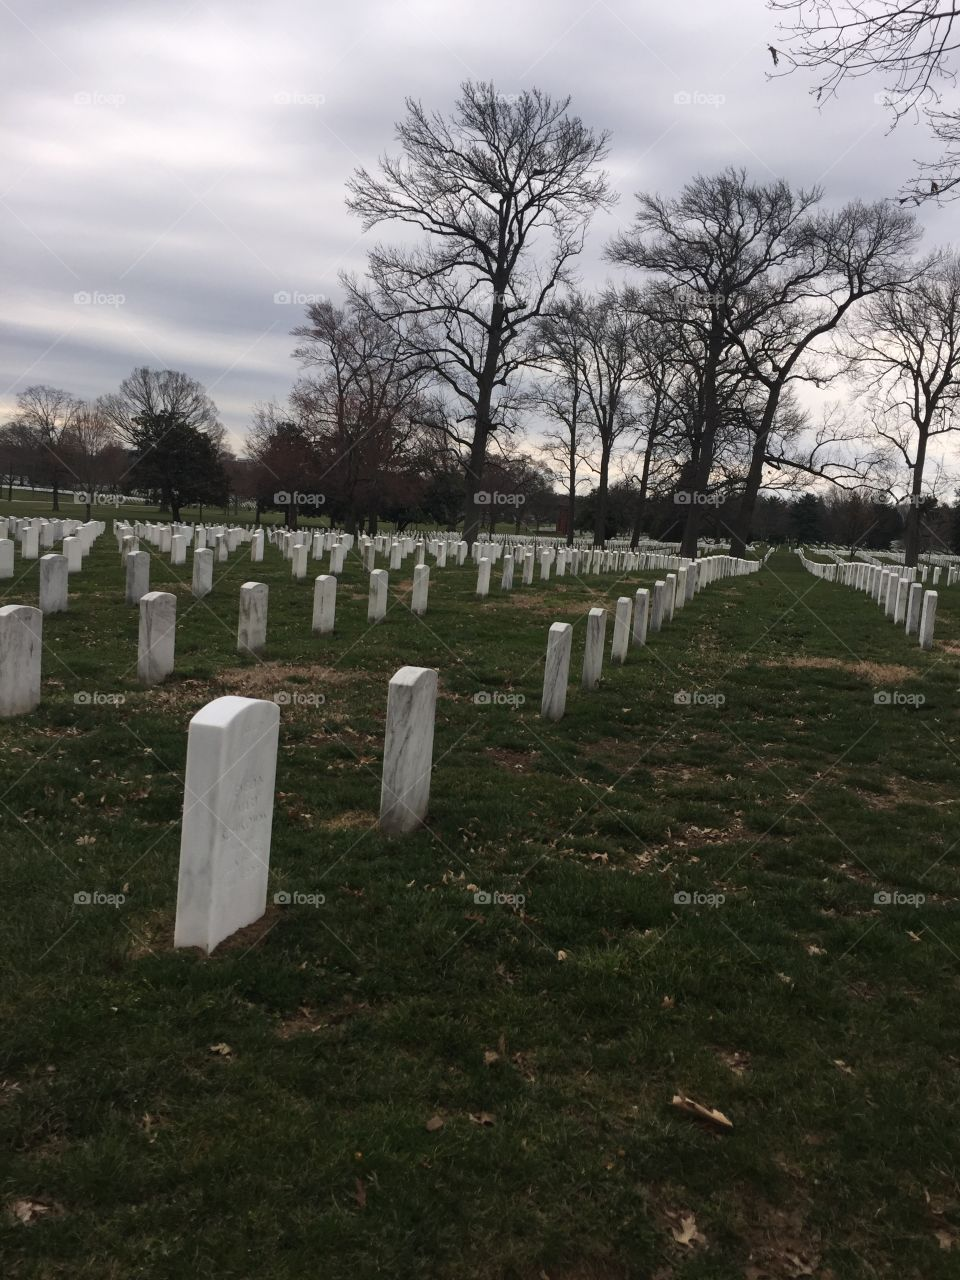 Memorable picture of Arlington cemetery honoring the fallen and those currently serving or have served.